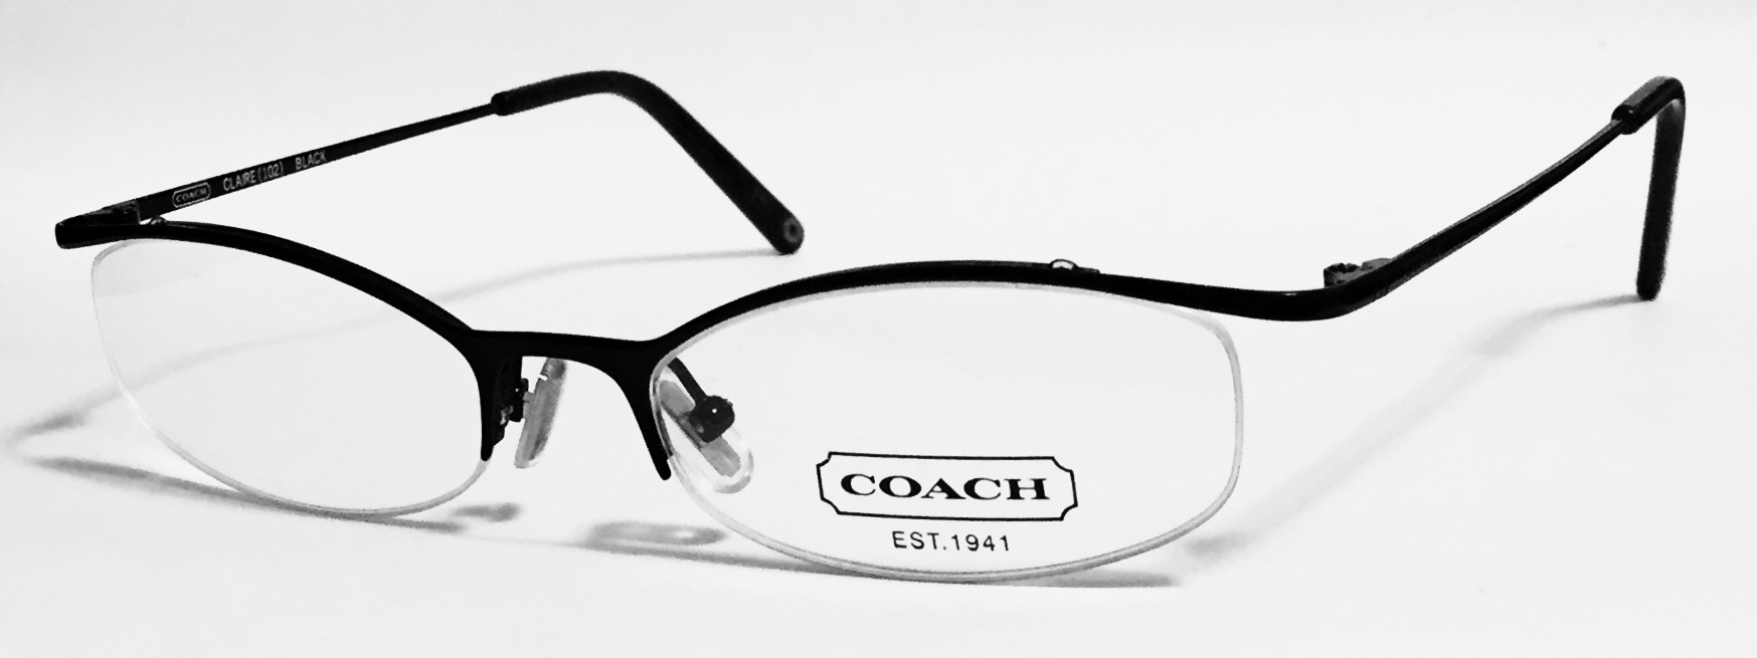 clearance COACH CLAIRE 102  SUNGLASSES